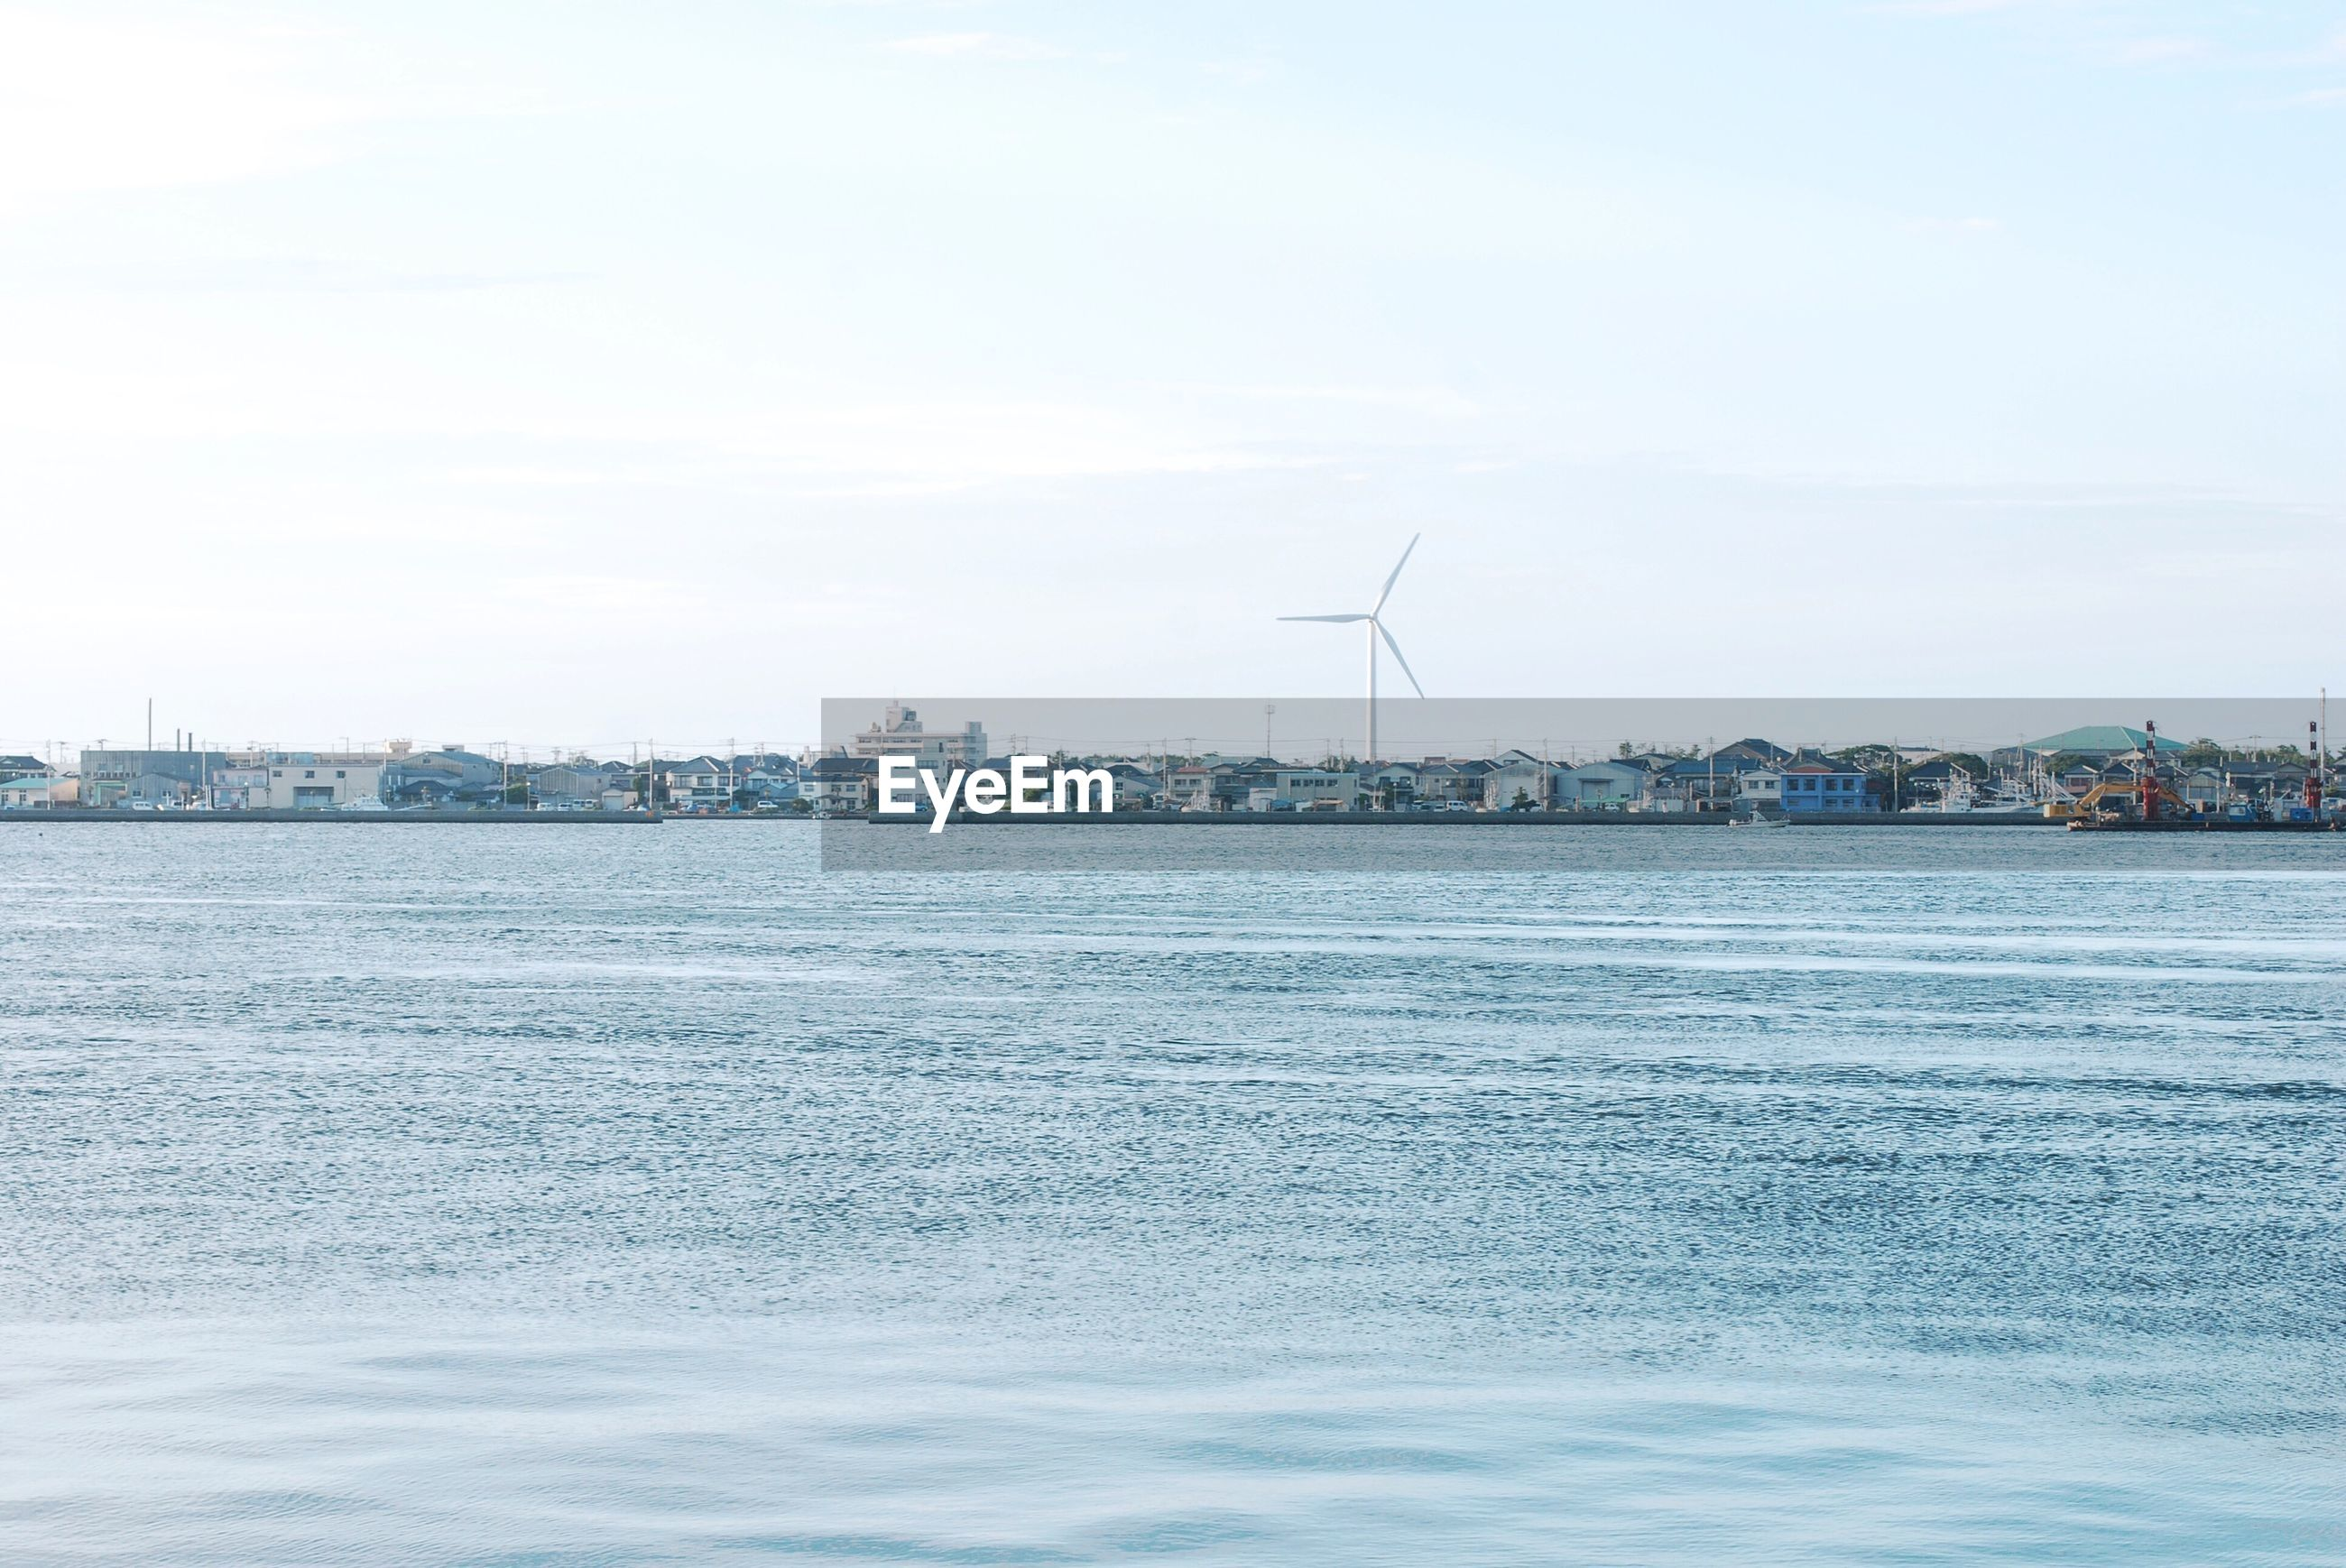 water, sea, waterfront, sky, day, outdoors, no people, alternative energy, nature, built structure, nautical vessel, architecture, wind power, building exterior, wind turbine, windmill, beauty in nature, city